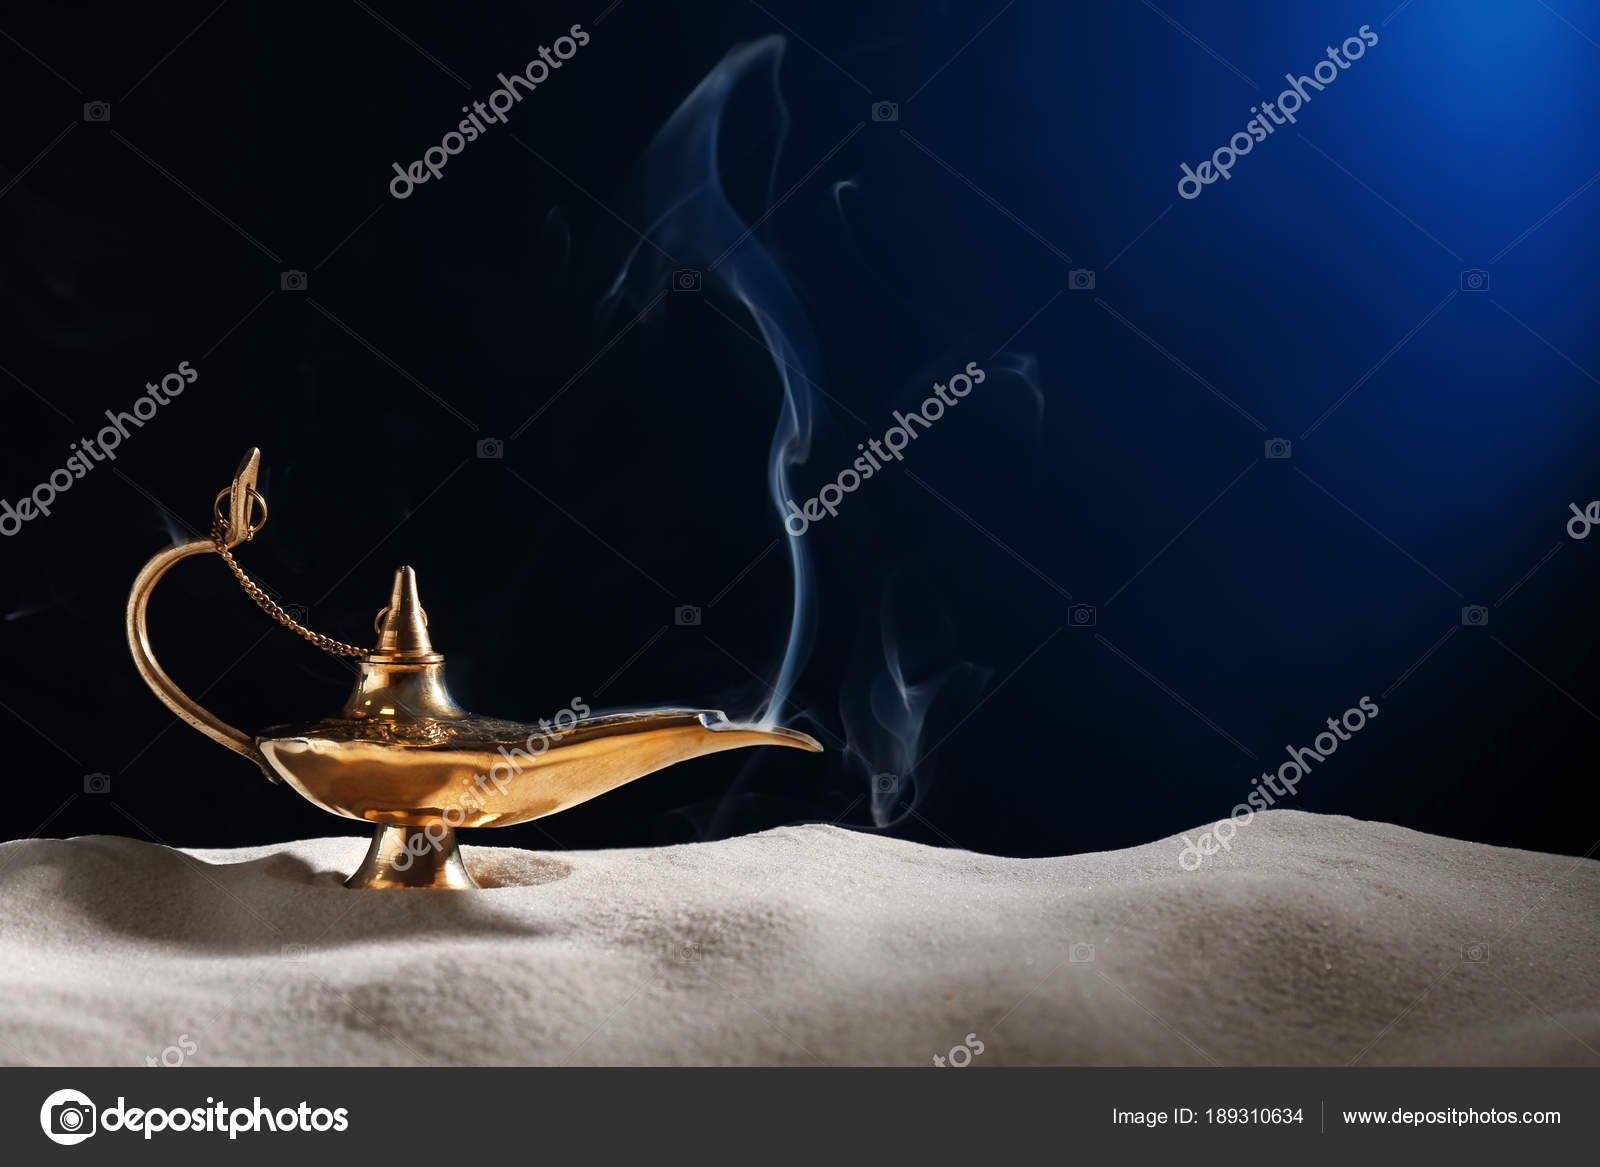 Chaise Aladin Aladdin Magic Lamp On Sand Against Dark Background Stock Photo